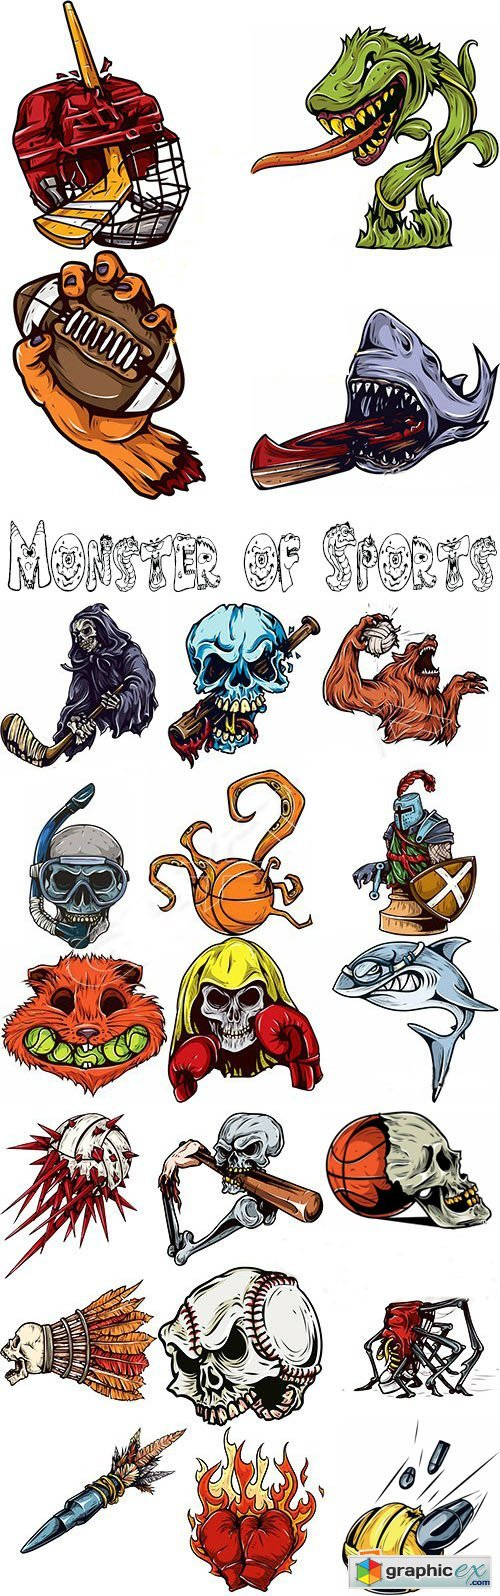 Monster of Sports Stock Image Vectors and Illustrations